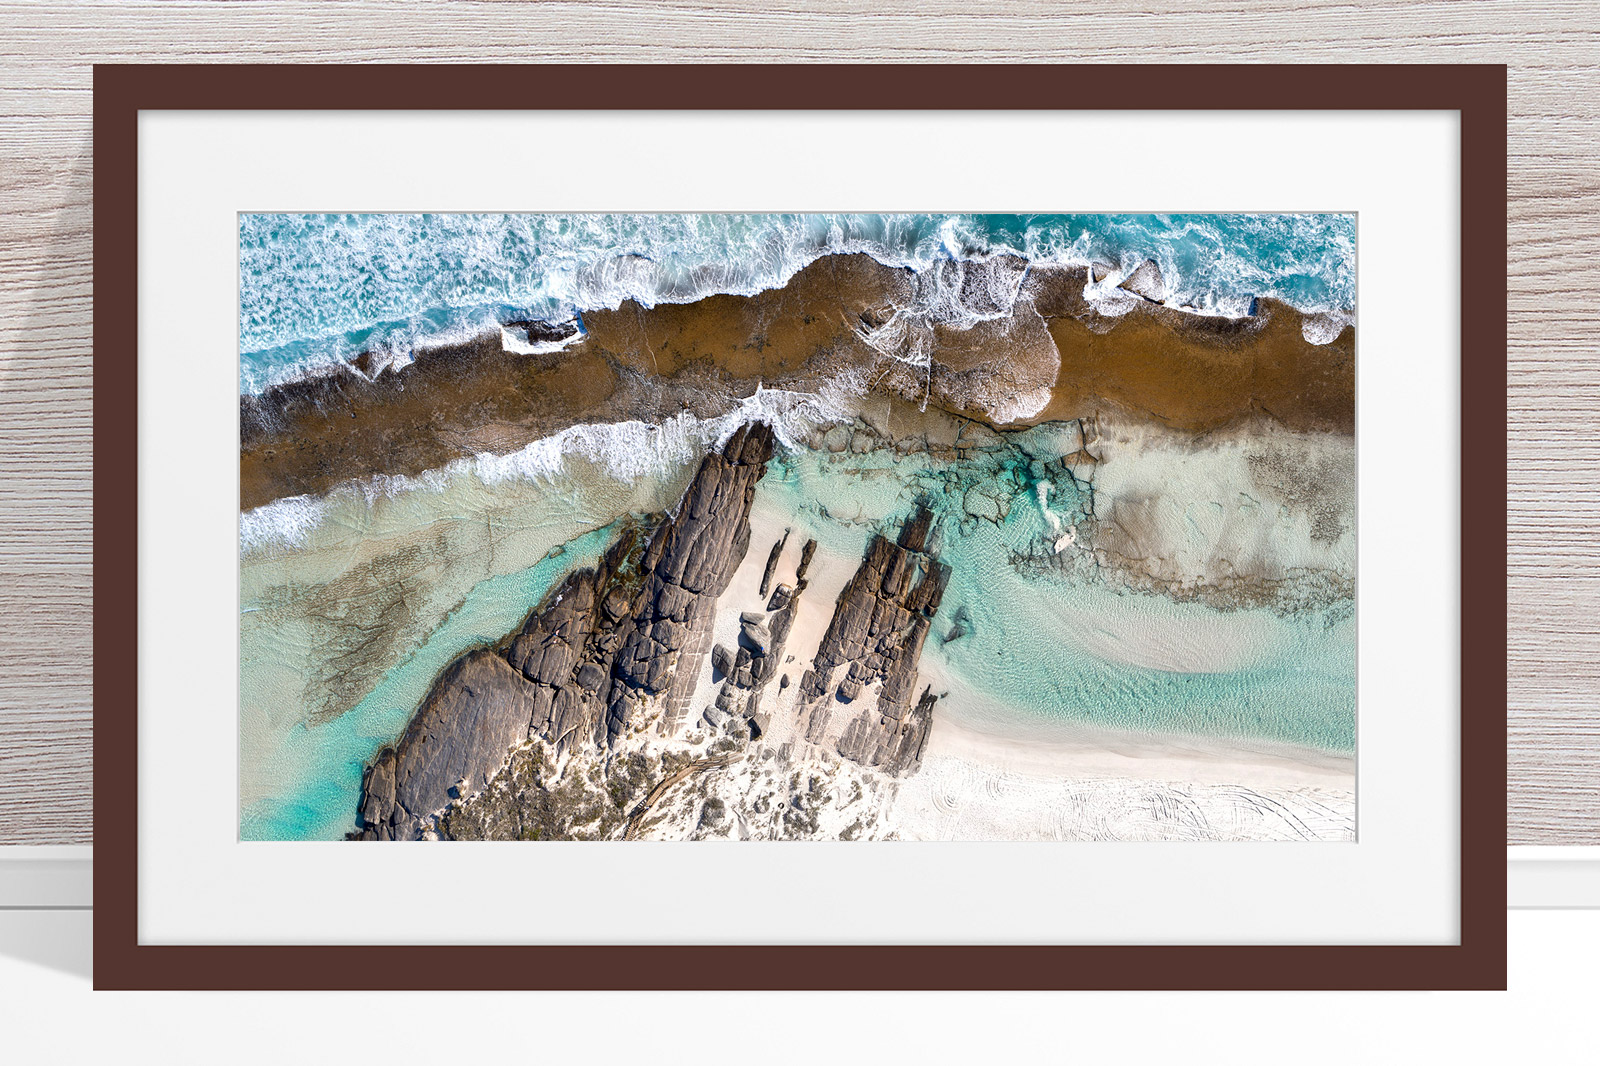 010 - Jason Mazur - '11 Mile Beach, Esperance' Dark Frame